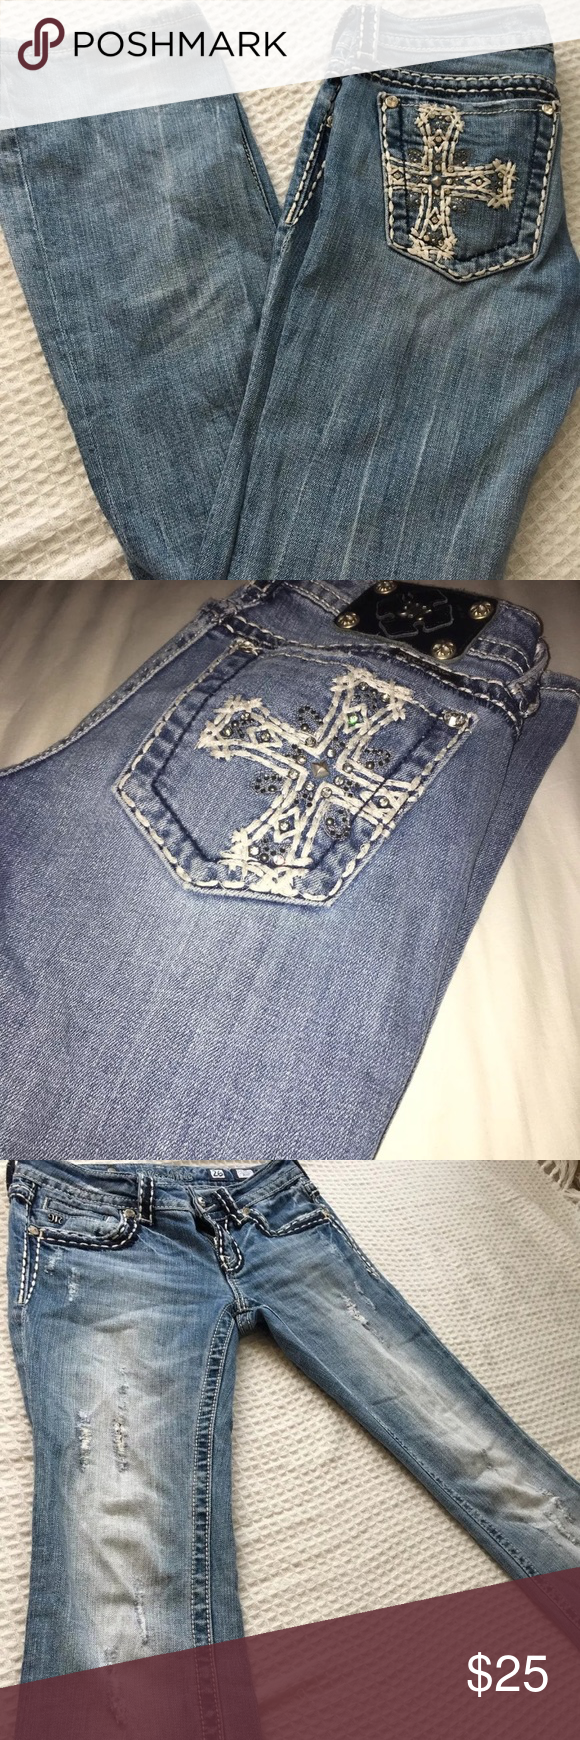 Miss me jeans with Cross embroidered size 26 Pre loved in excellent condition miss me jeans 💕💕 Miss Me Jeans Boot Cut